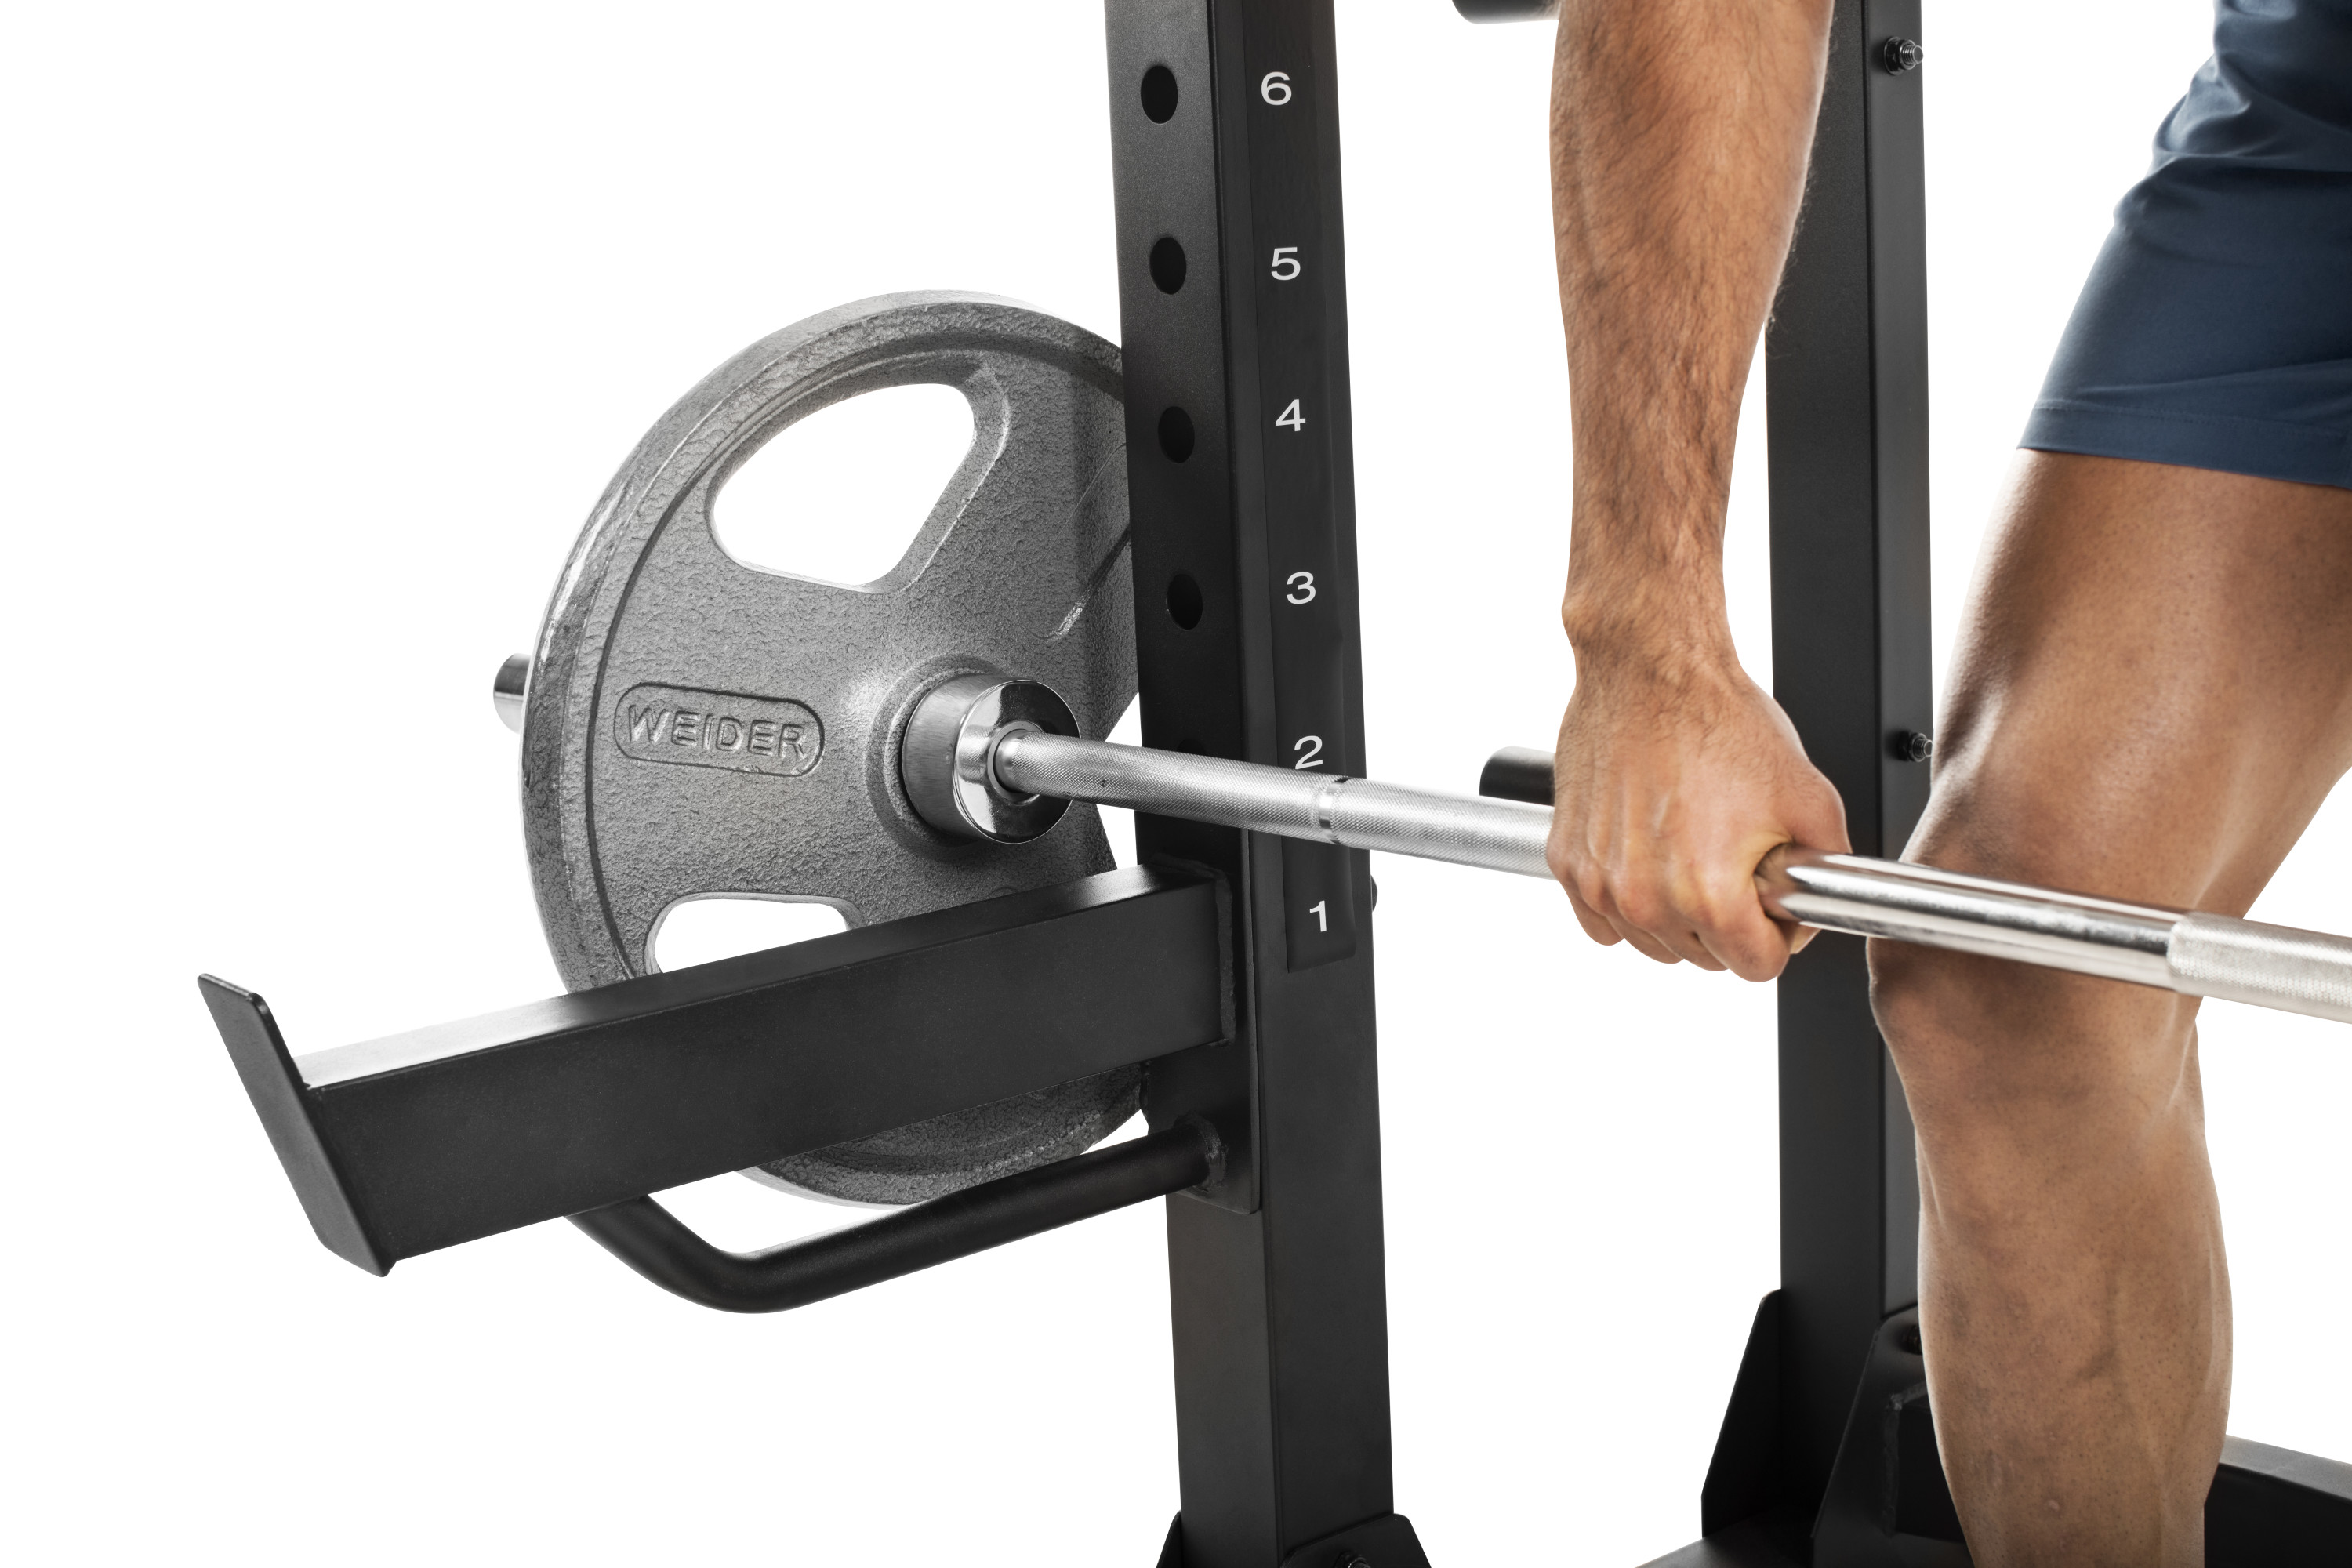 weider pro 7500 power rack with integrated weight storage